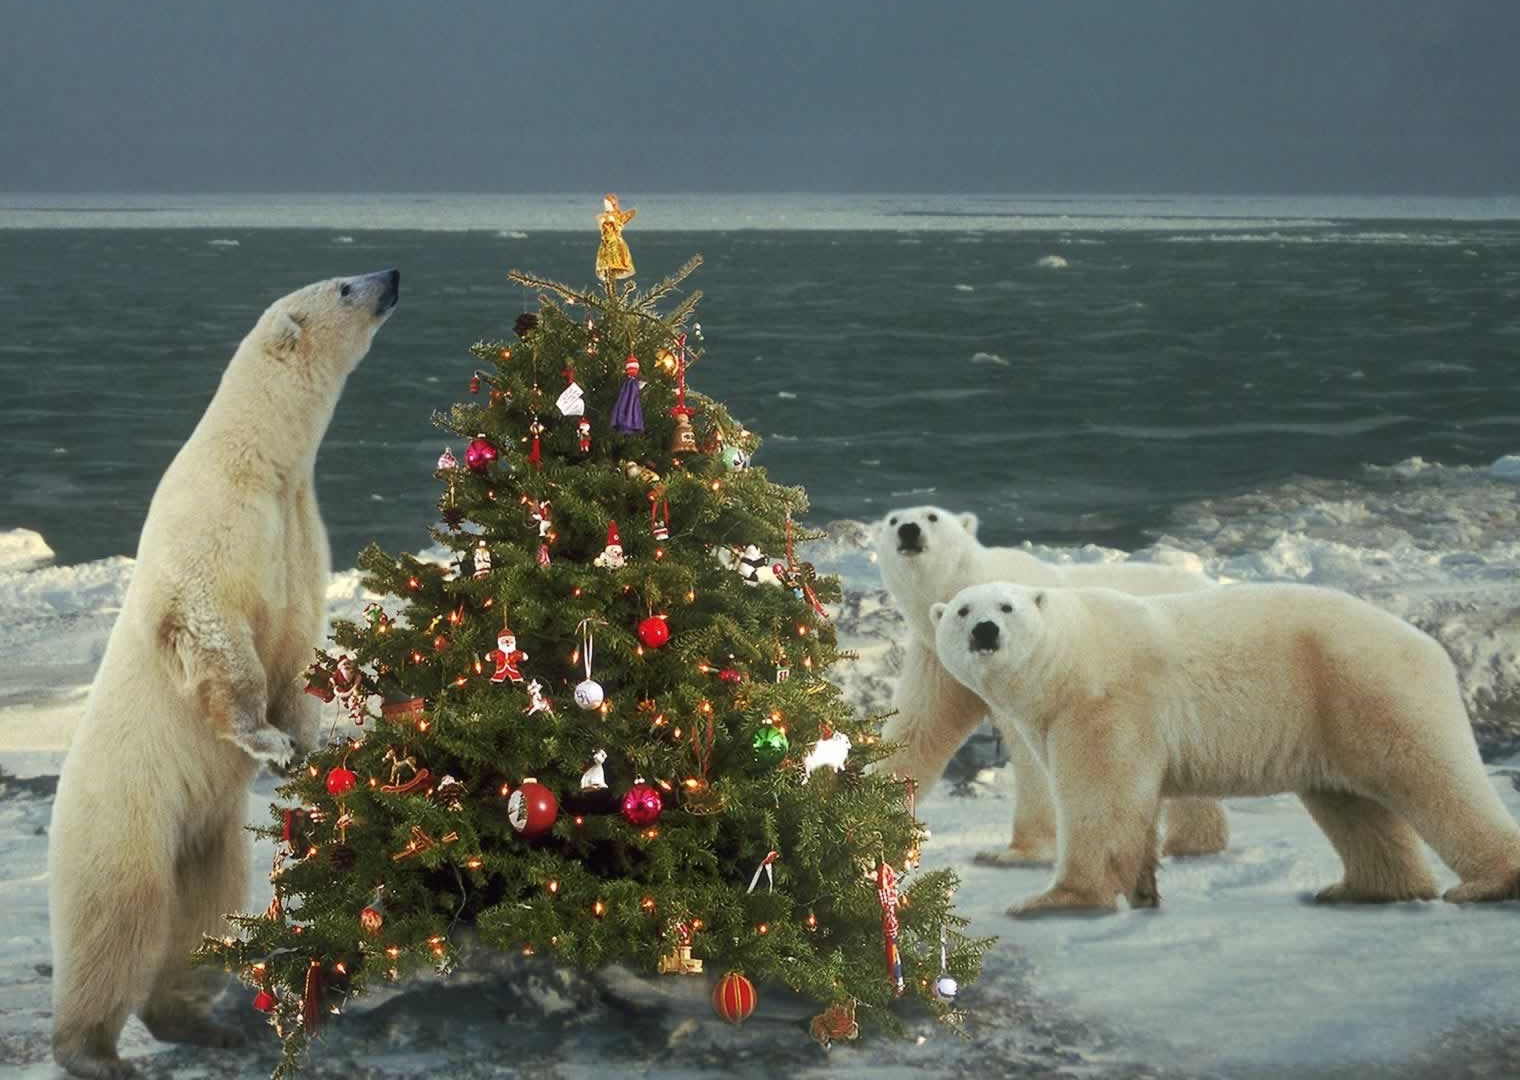 Polar Bears Wild About Christmas - Christmas Animals Wallpaper Image